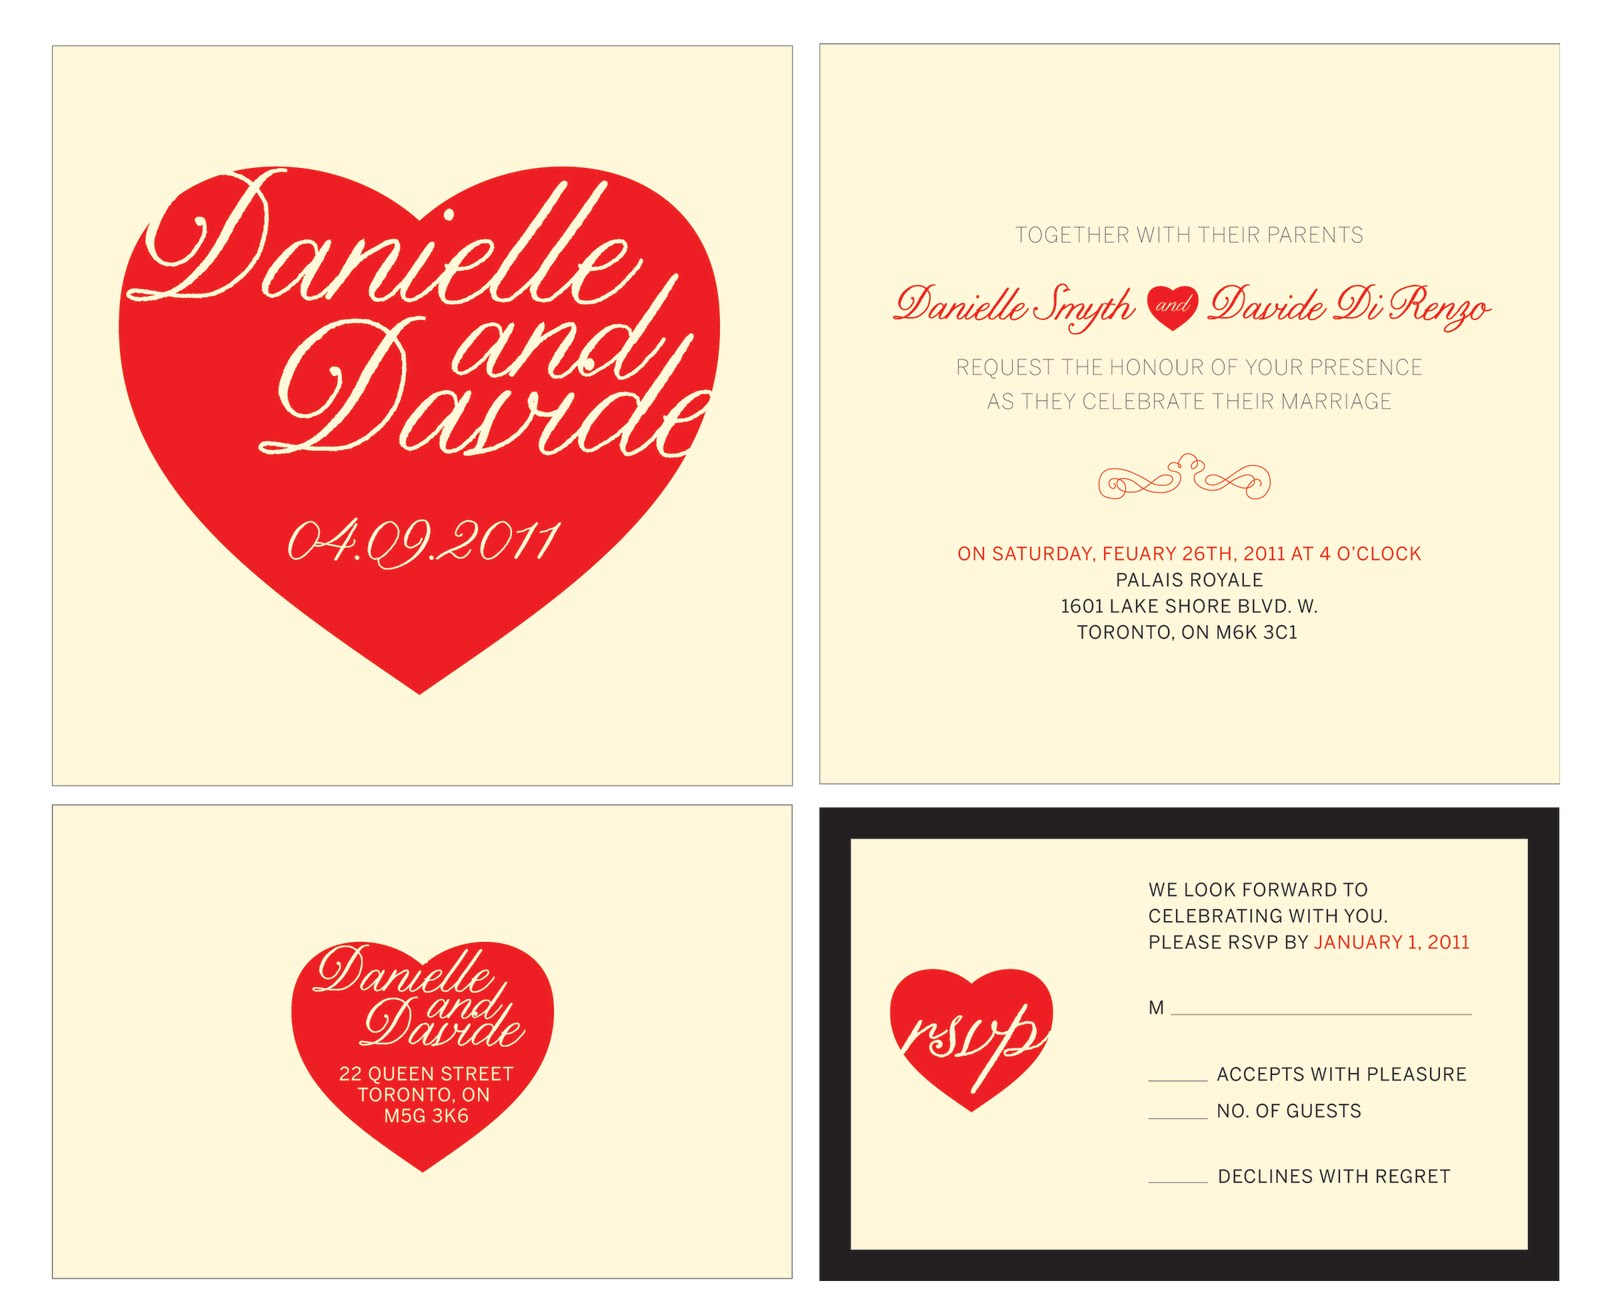 SAY I DO: wedding invite design} - The Sweet Escape Creative Studio